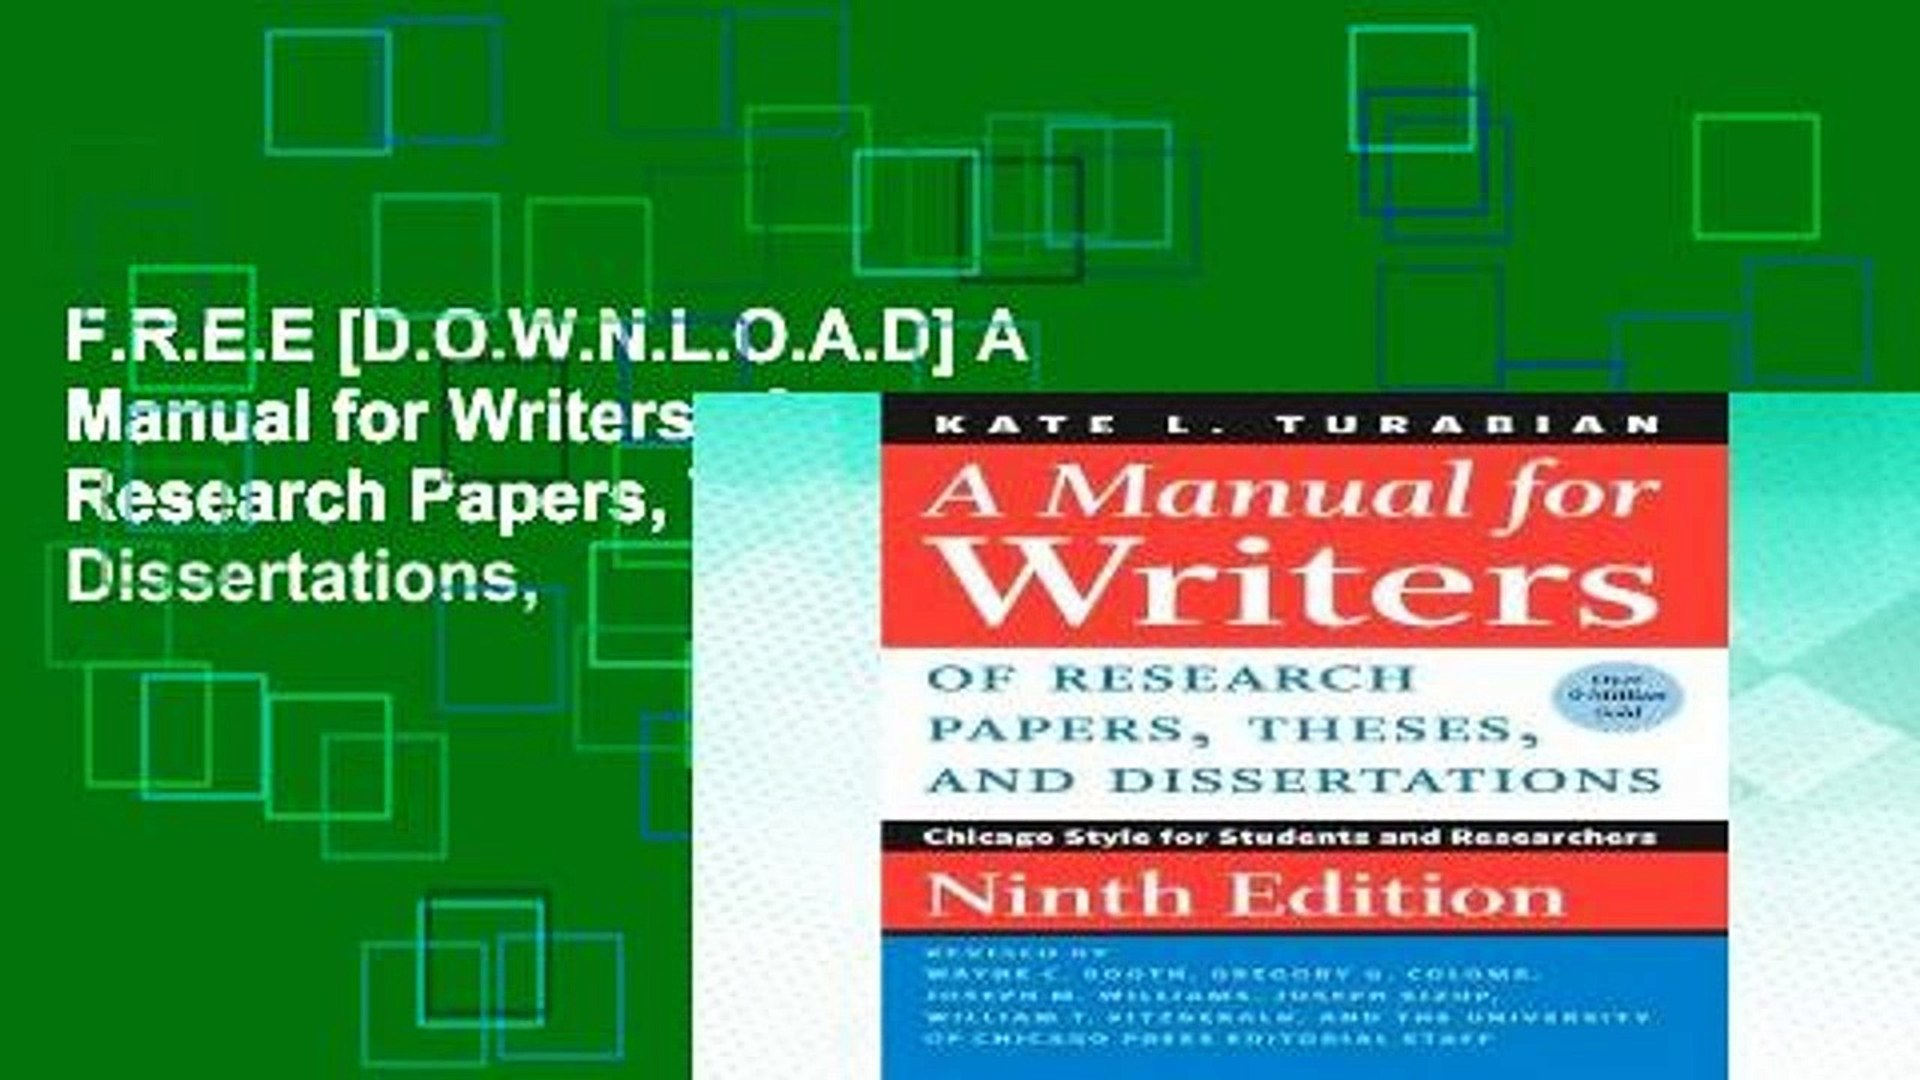 010 X1080 Kcn Research Paper Manual For Writers Of Papers Theses And Dissertations 9th Frightening A Edition Pdf Full